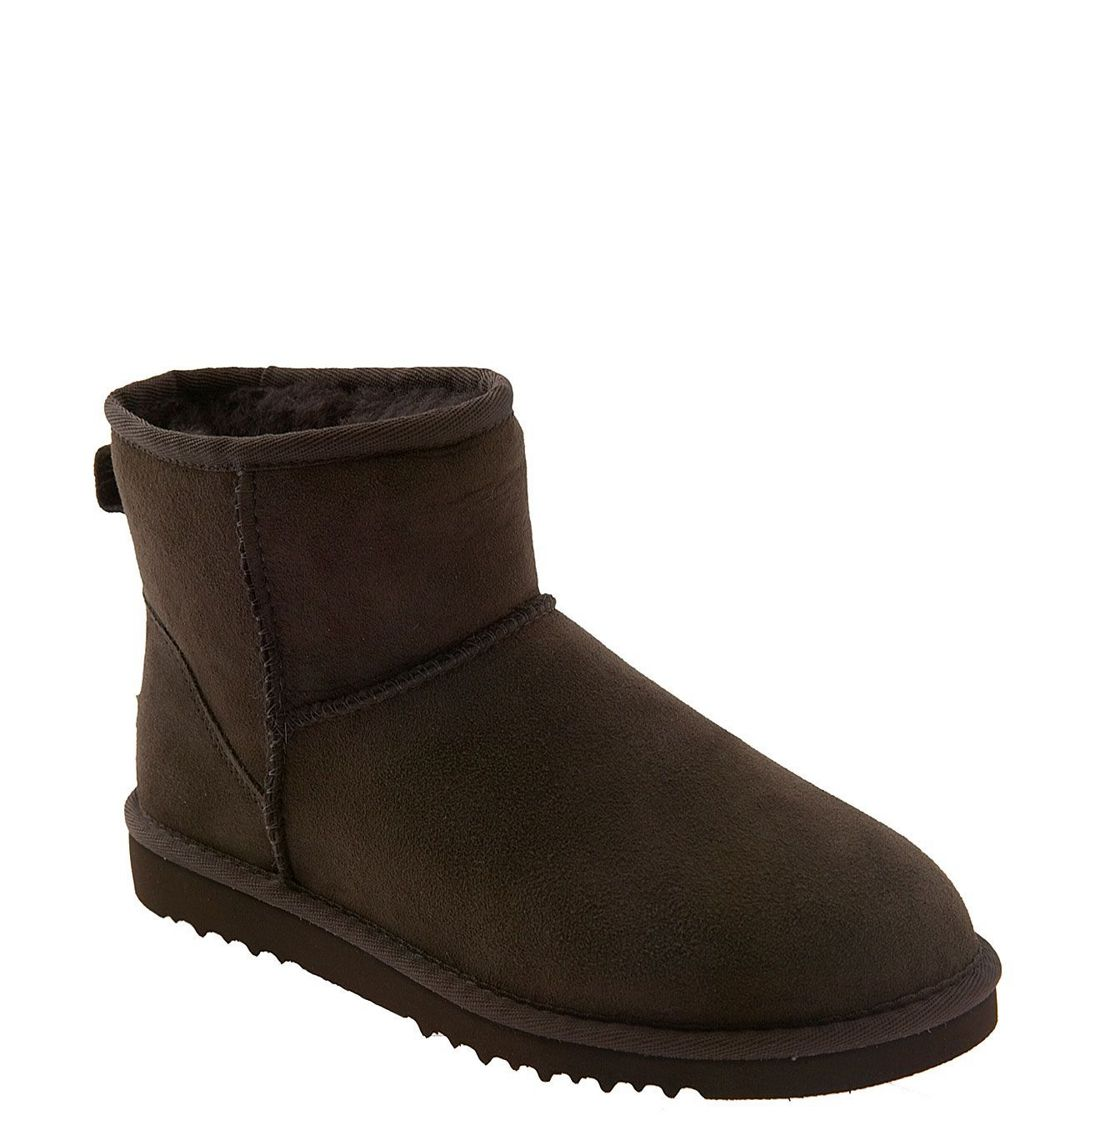 ugg classic mini boot in brown chocolate lyst